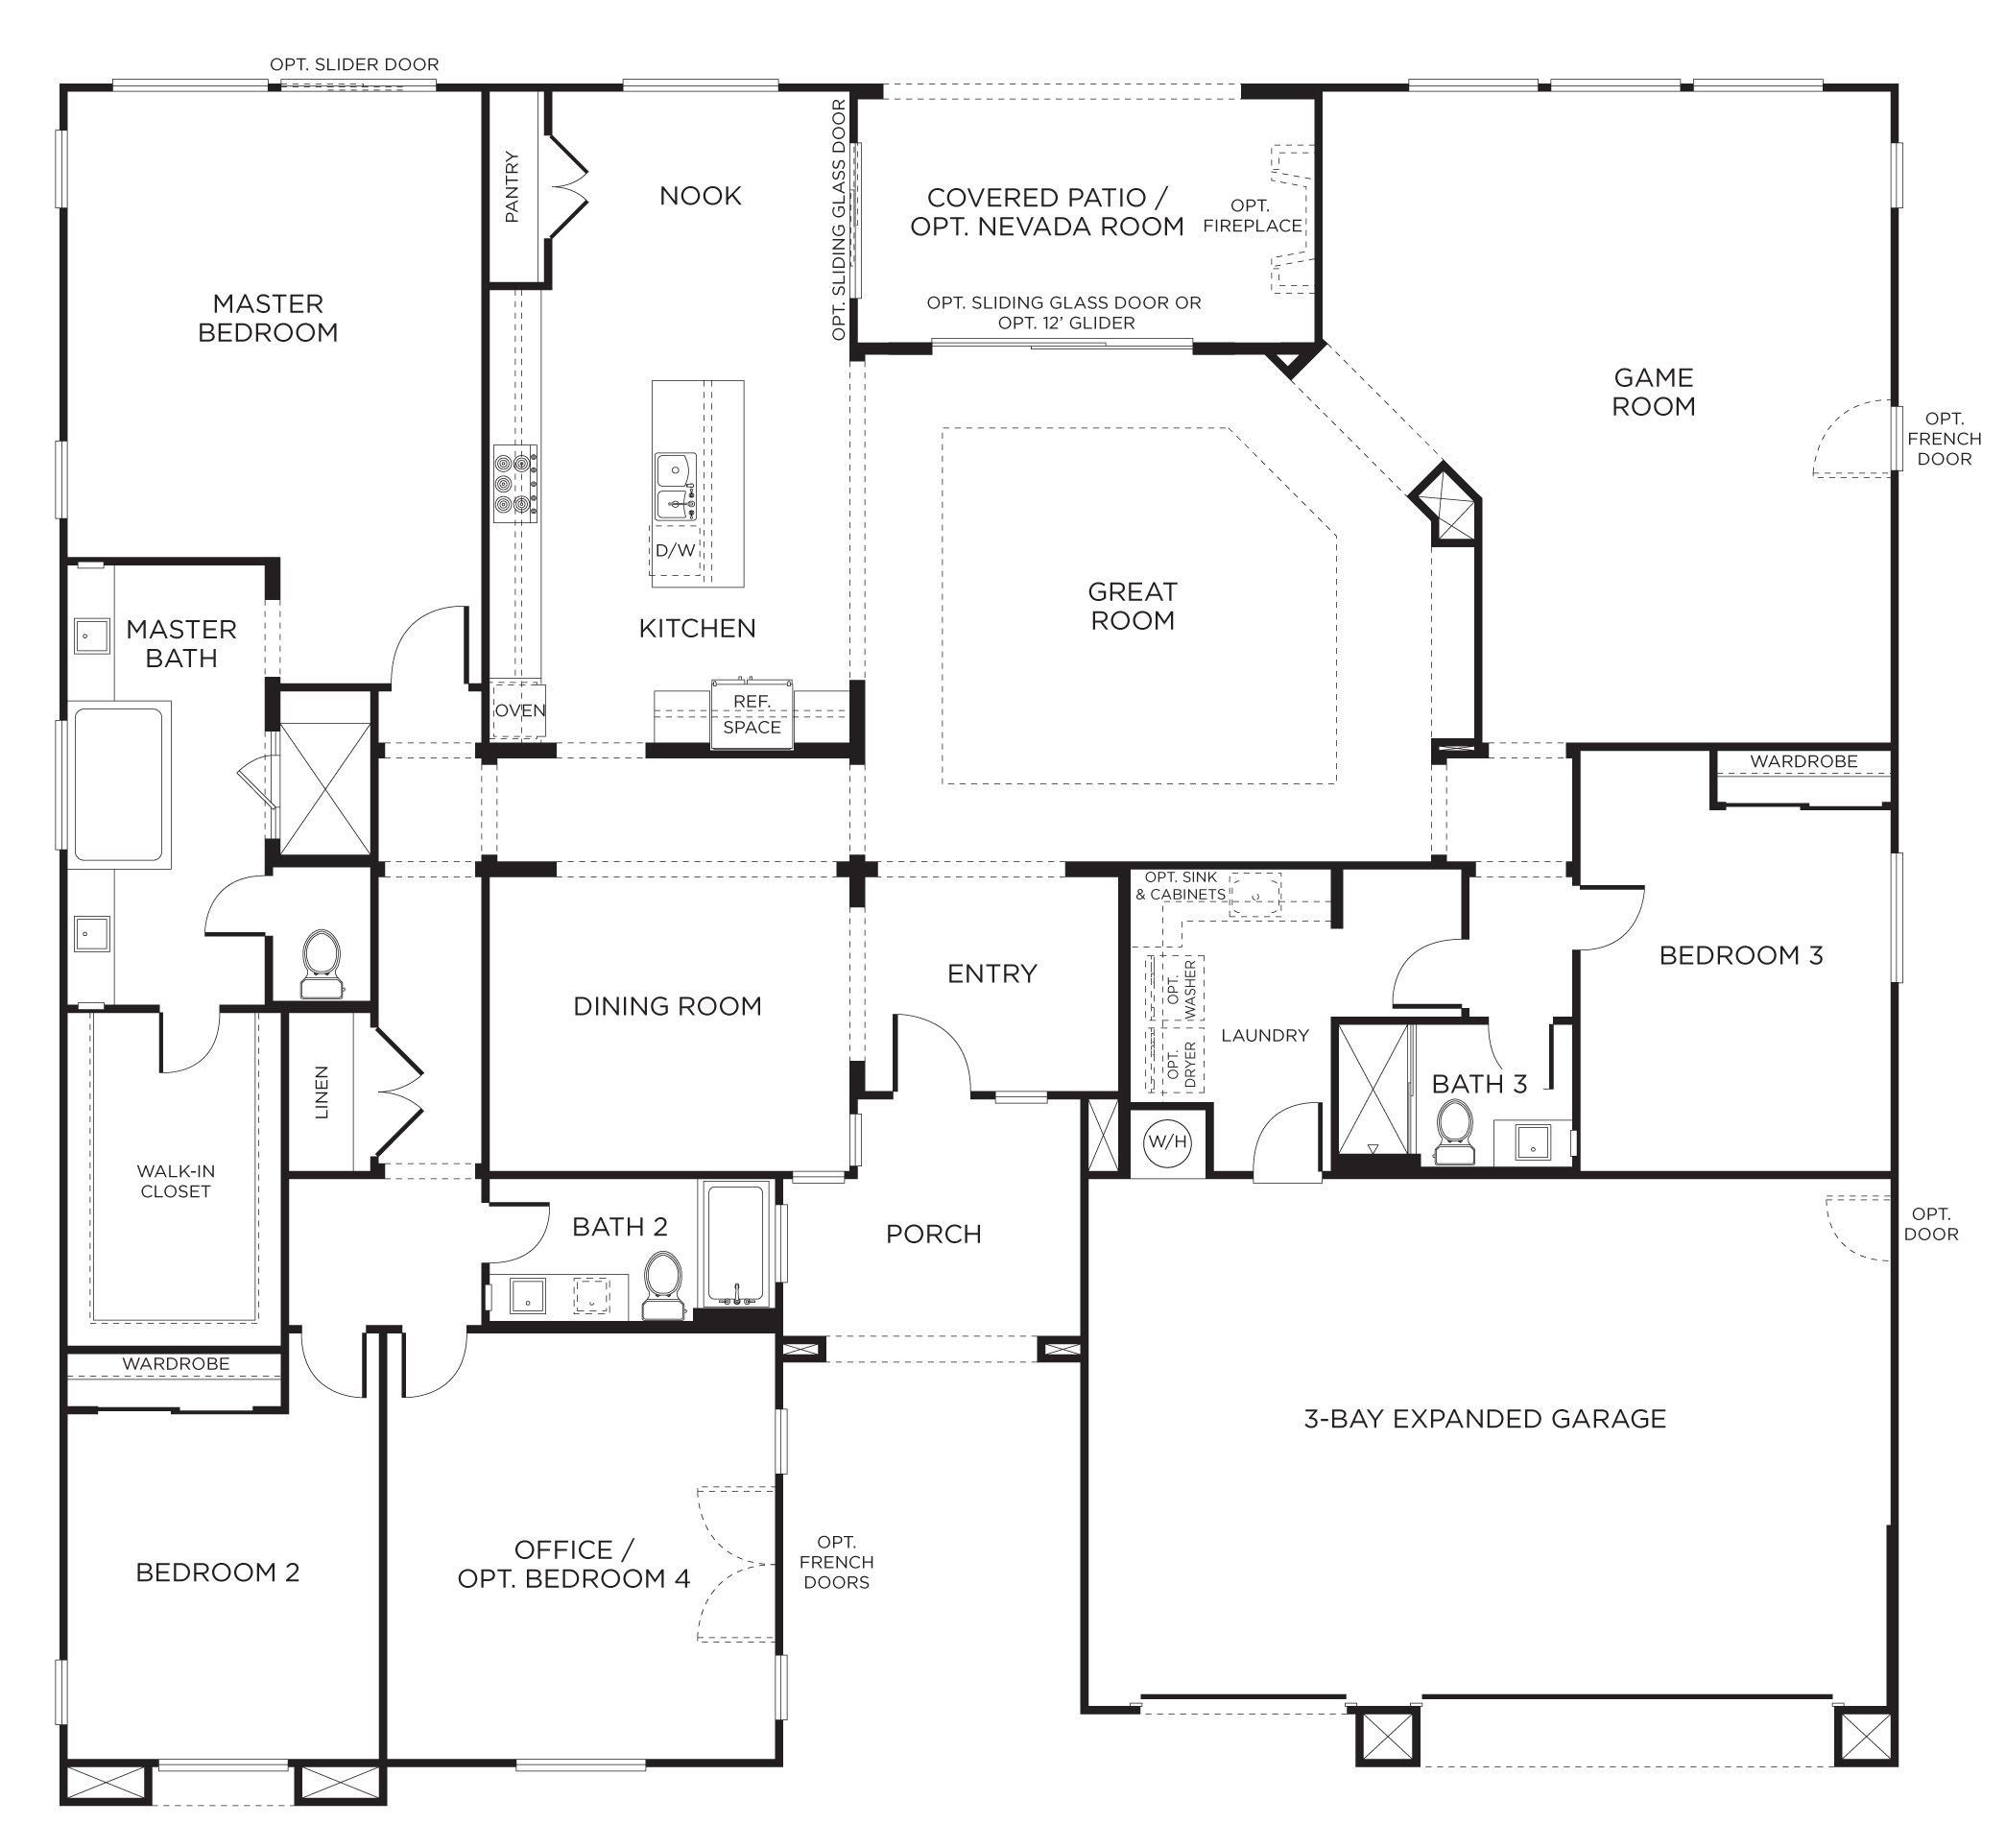 4 Bedroom House Plans interesting beautiful 4 bedroom house plans with bedroom Floorplan 2 3 4 Bedrooms 3 Bathrooms 3400 Square Feet One Floor House Plans5